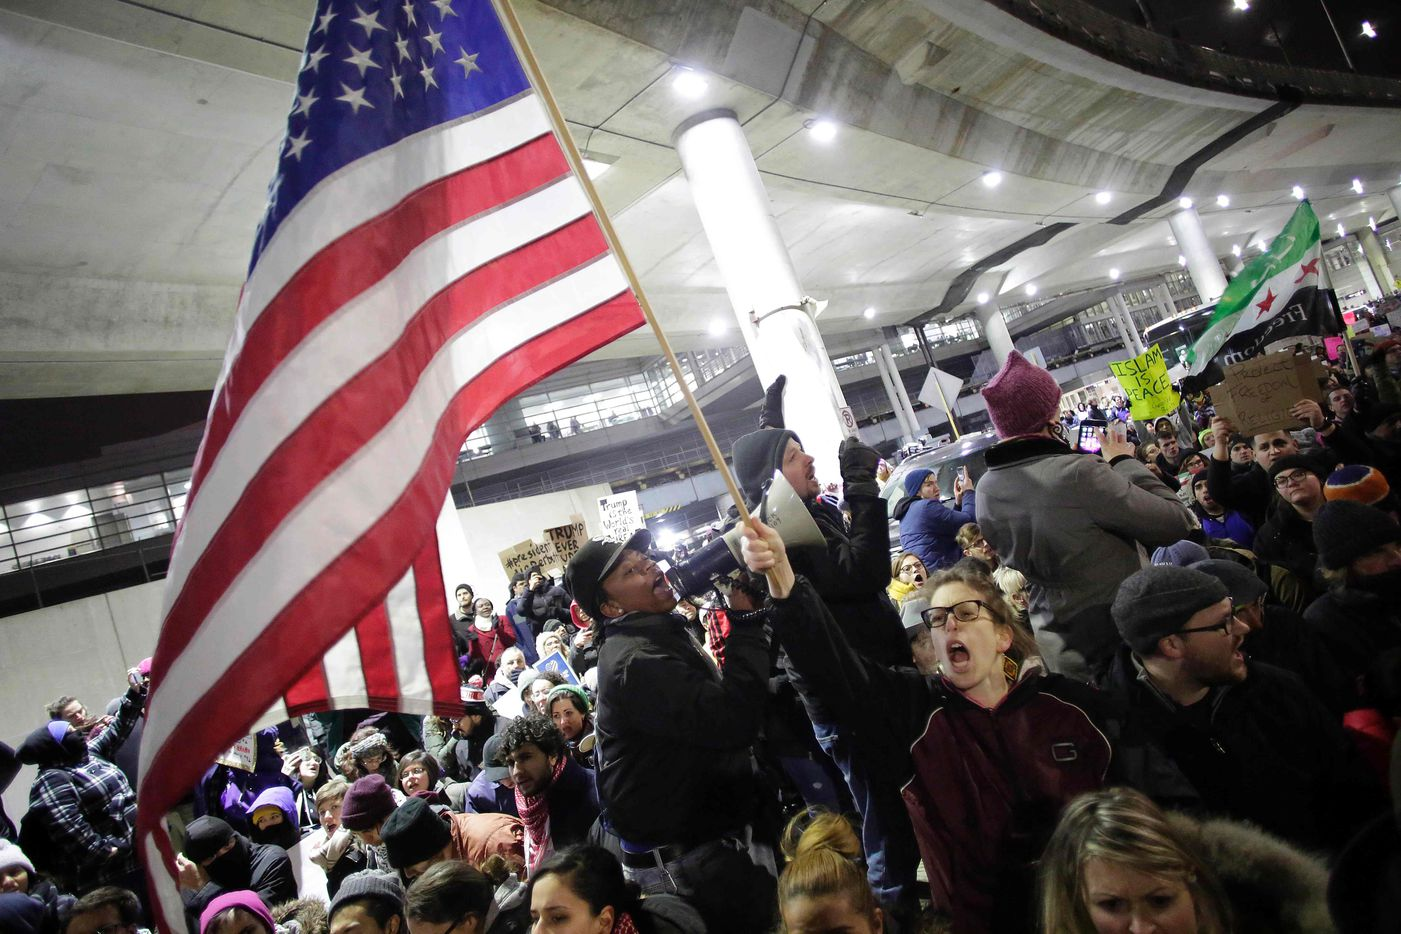 """Demonstrators protest agaist President Trump's executive immigration ban at Chicago O'Hare International Airport on January 28, 2017. US President Donald Trump signed the controversial executive order that halted refugees and residents from predominantly Muslim countries from entering the United States. Trump boasted Saturday that his """"very strict"""" crackdown on Muslim immigration was working """"very nicely."""""""